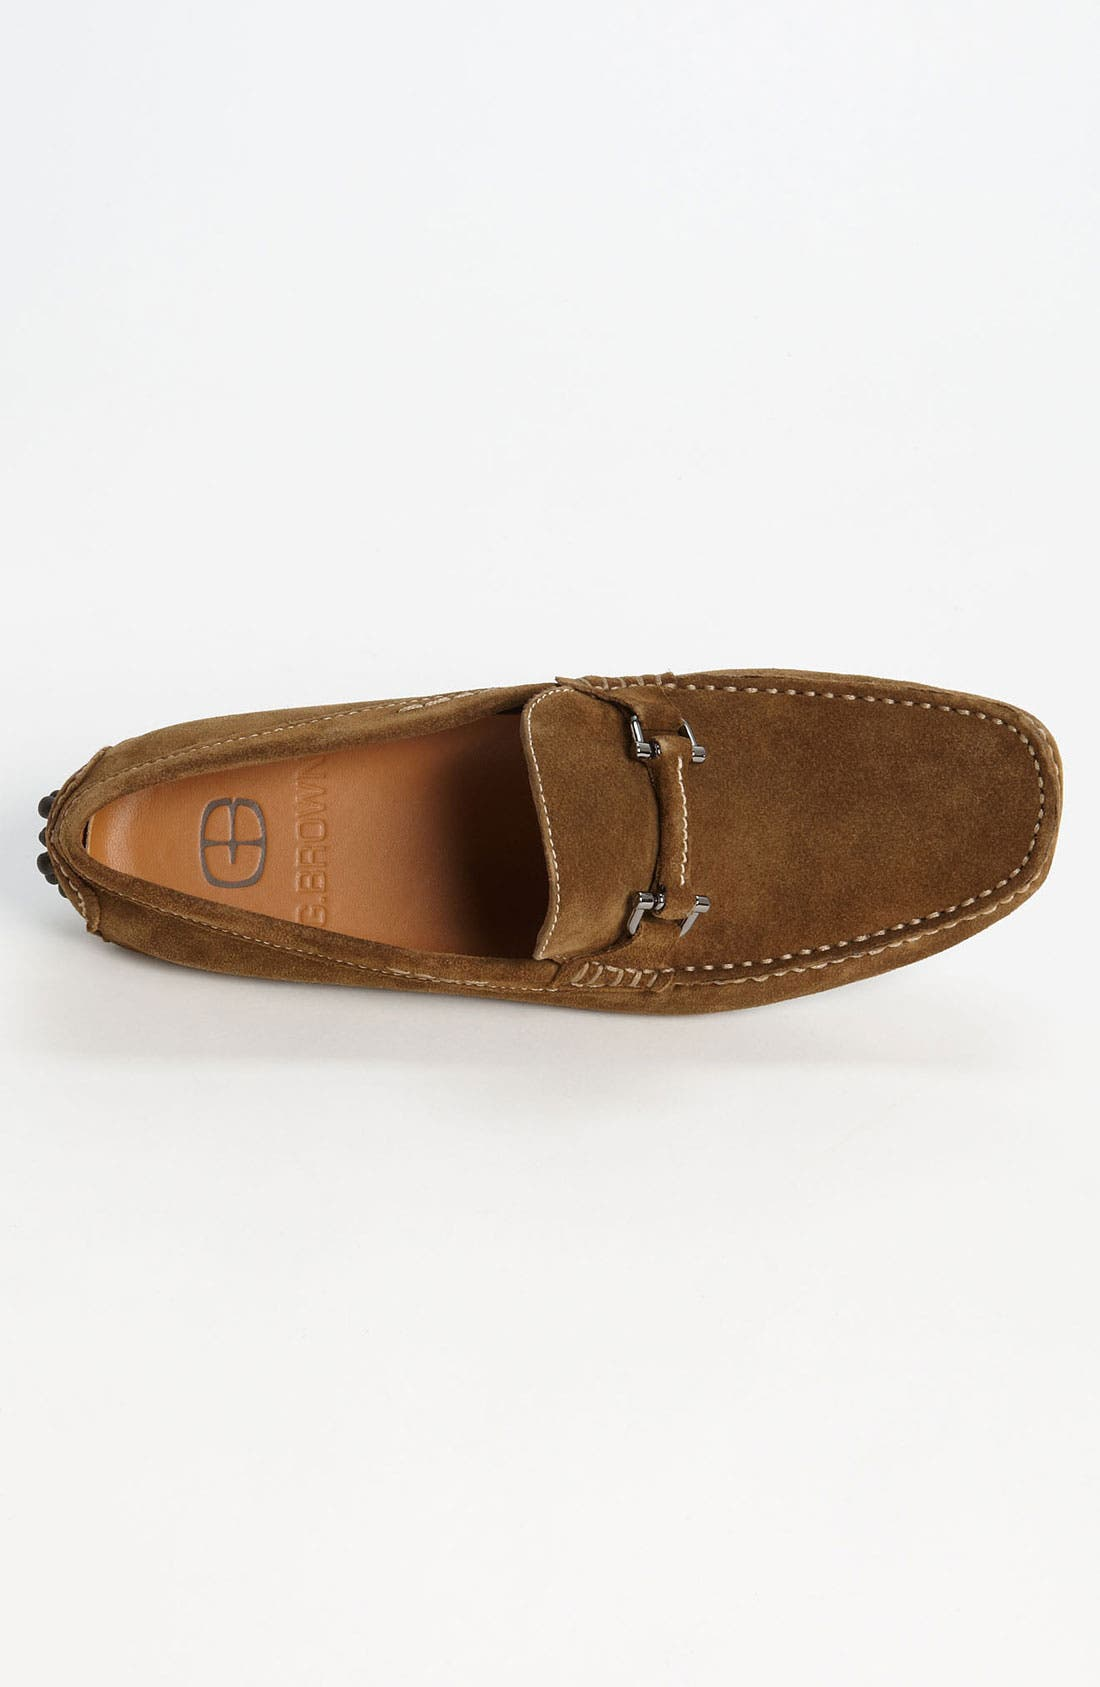 'Antigua' Driving Shoe,                             Alternate thumbnail 3, color,                             Tobacco Suede